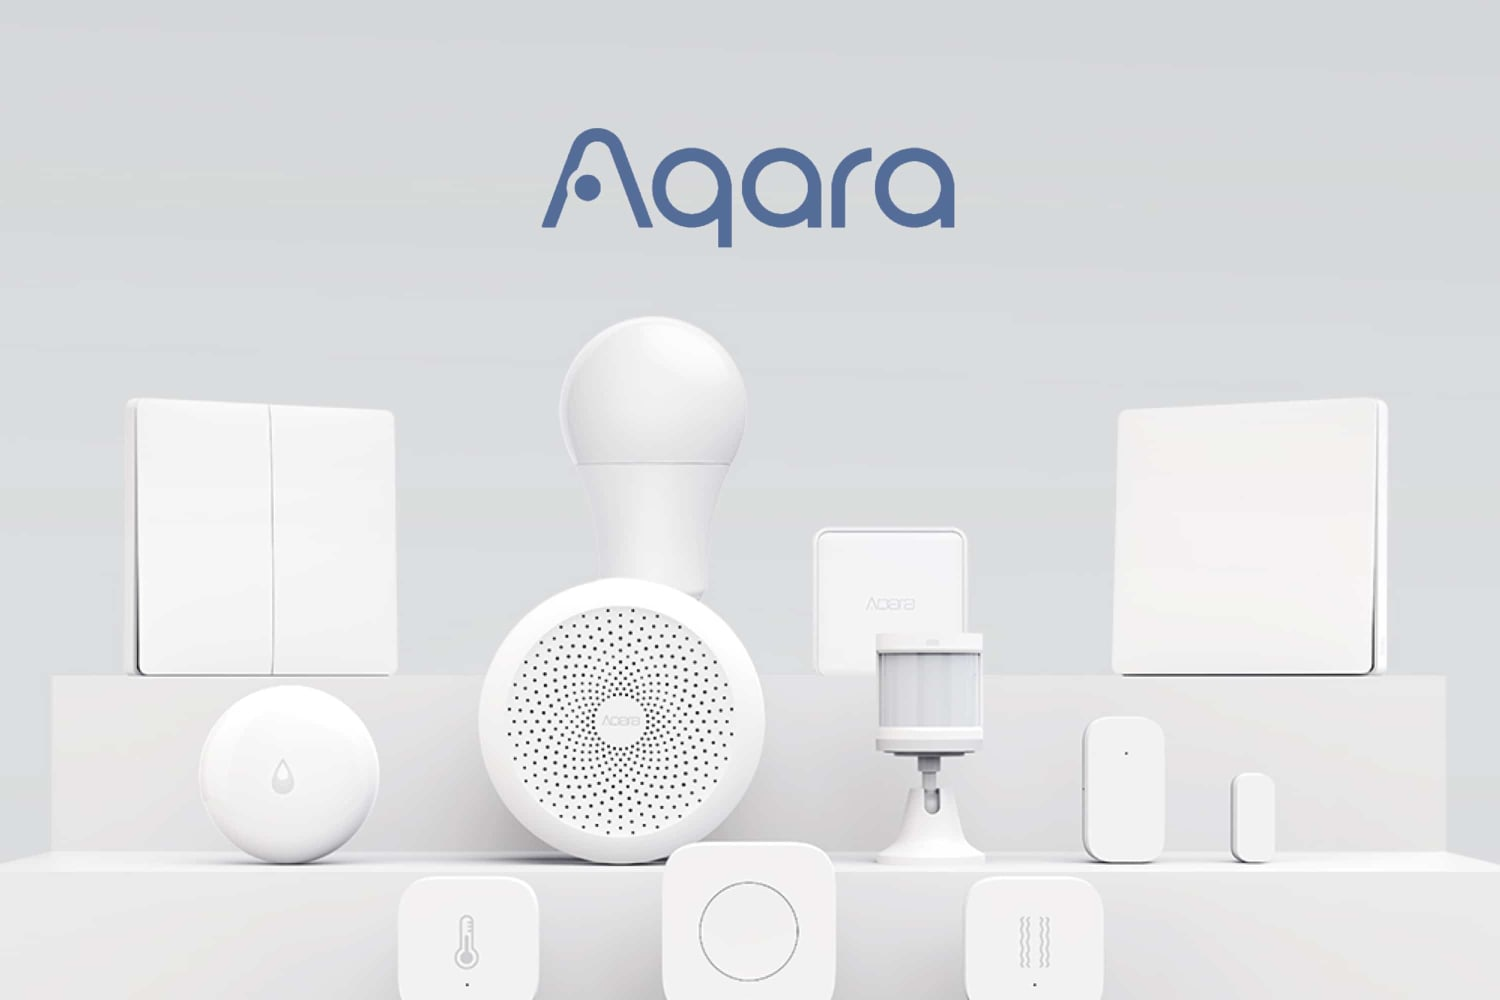 aqara-s-smart-lights-are-probably-en-route-to-the-us-marketplace-soon-20201126-1